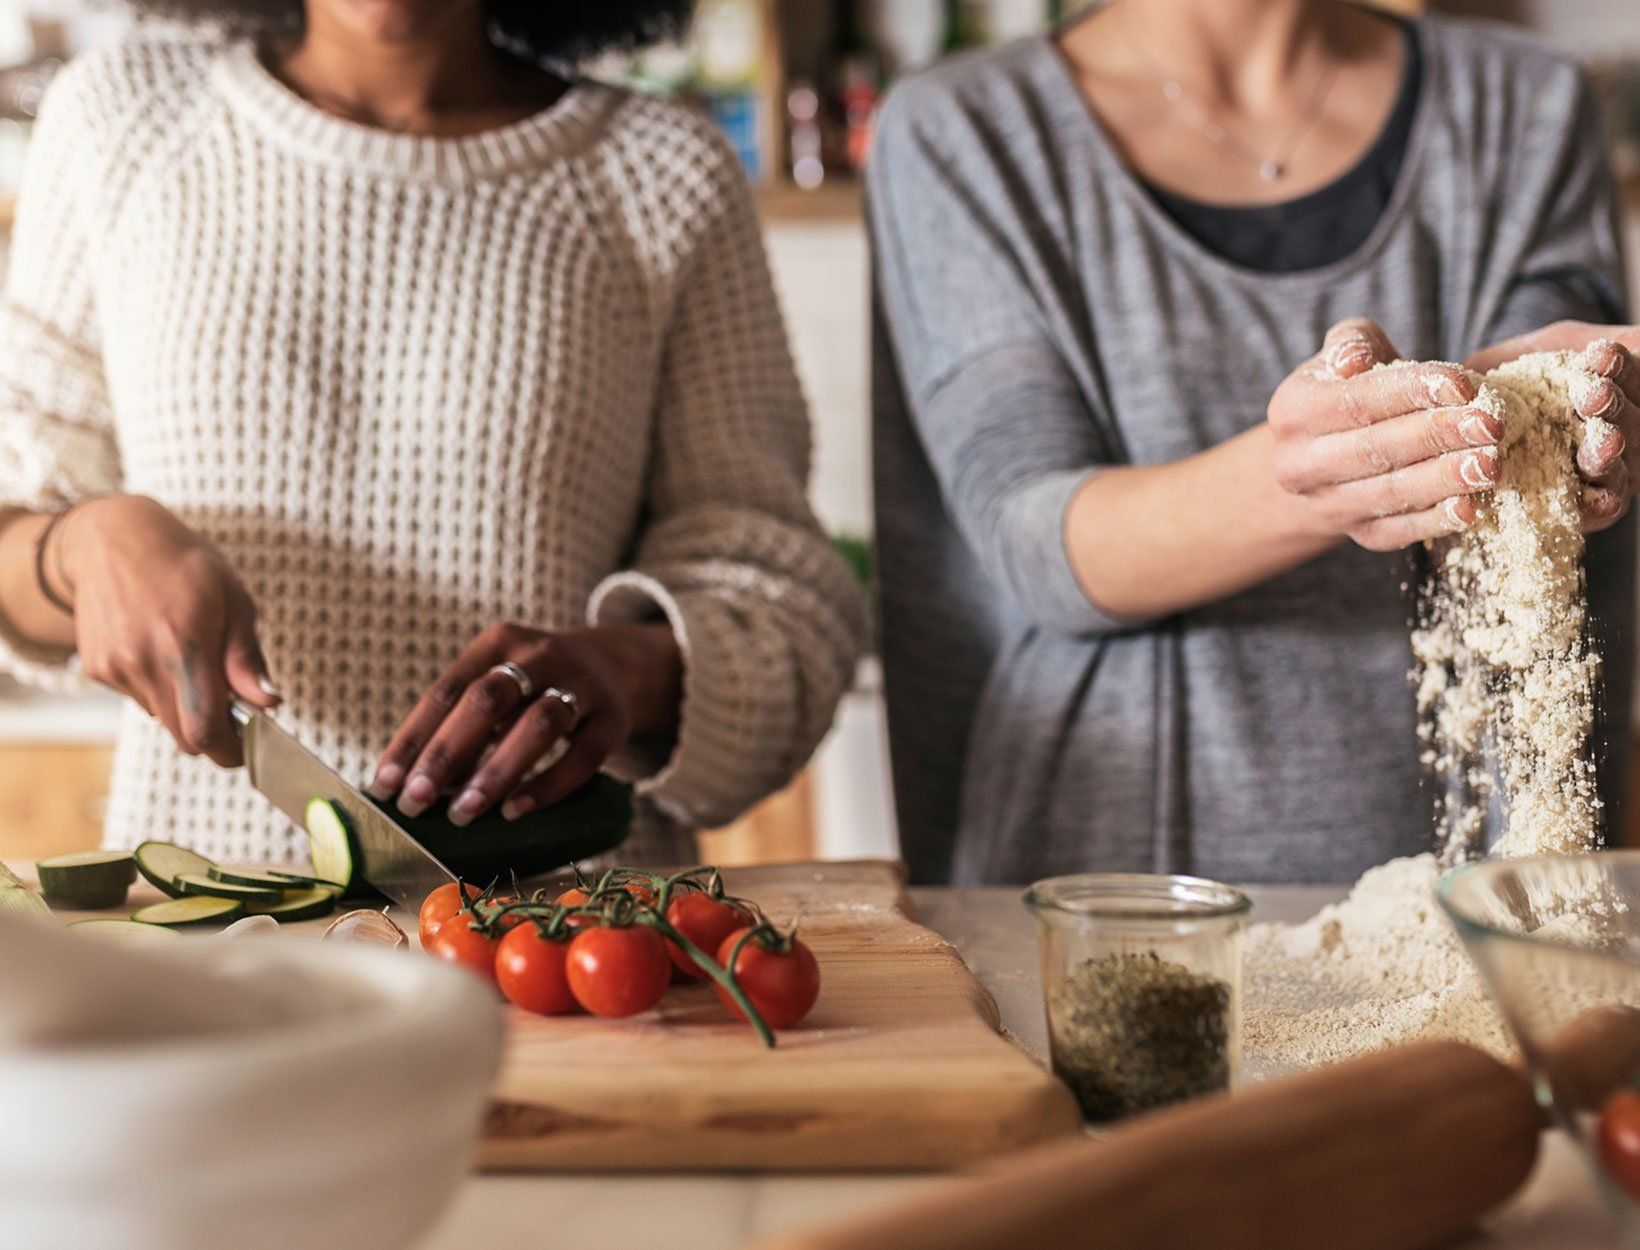 Our Favorite Cooking Projects